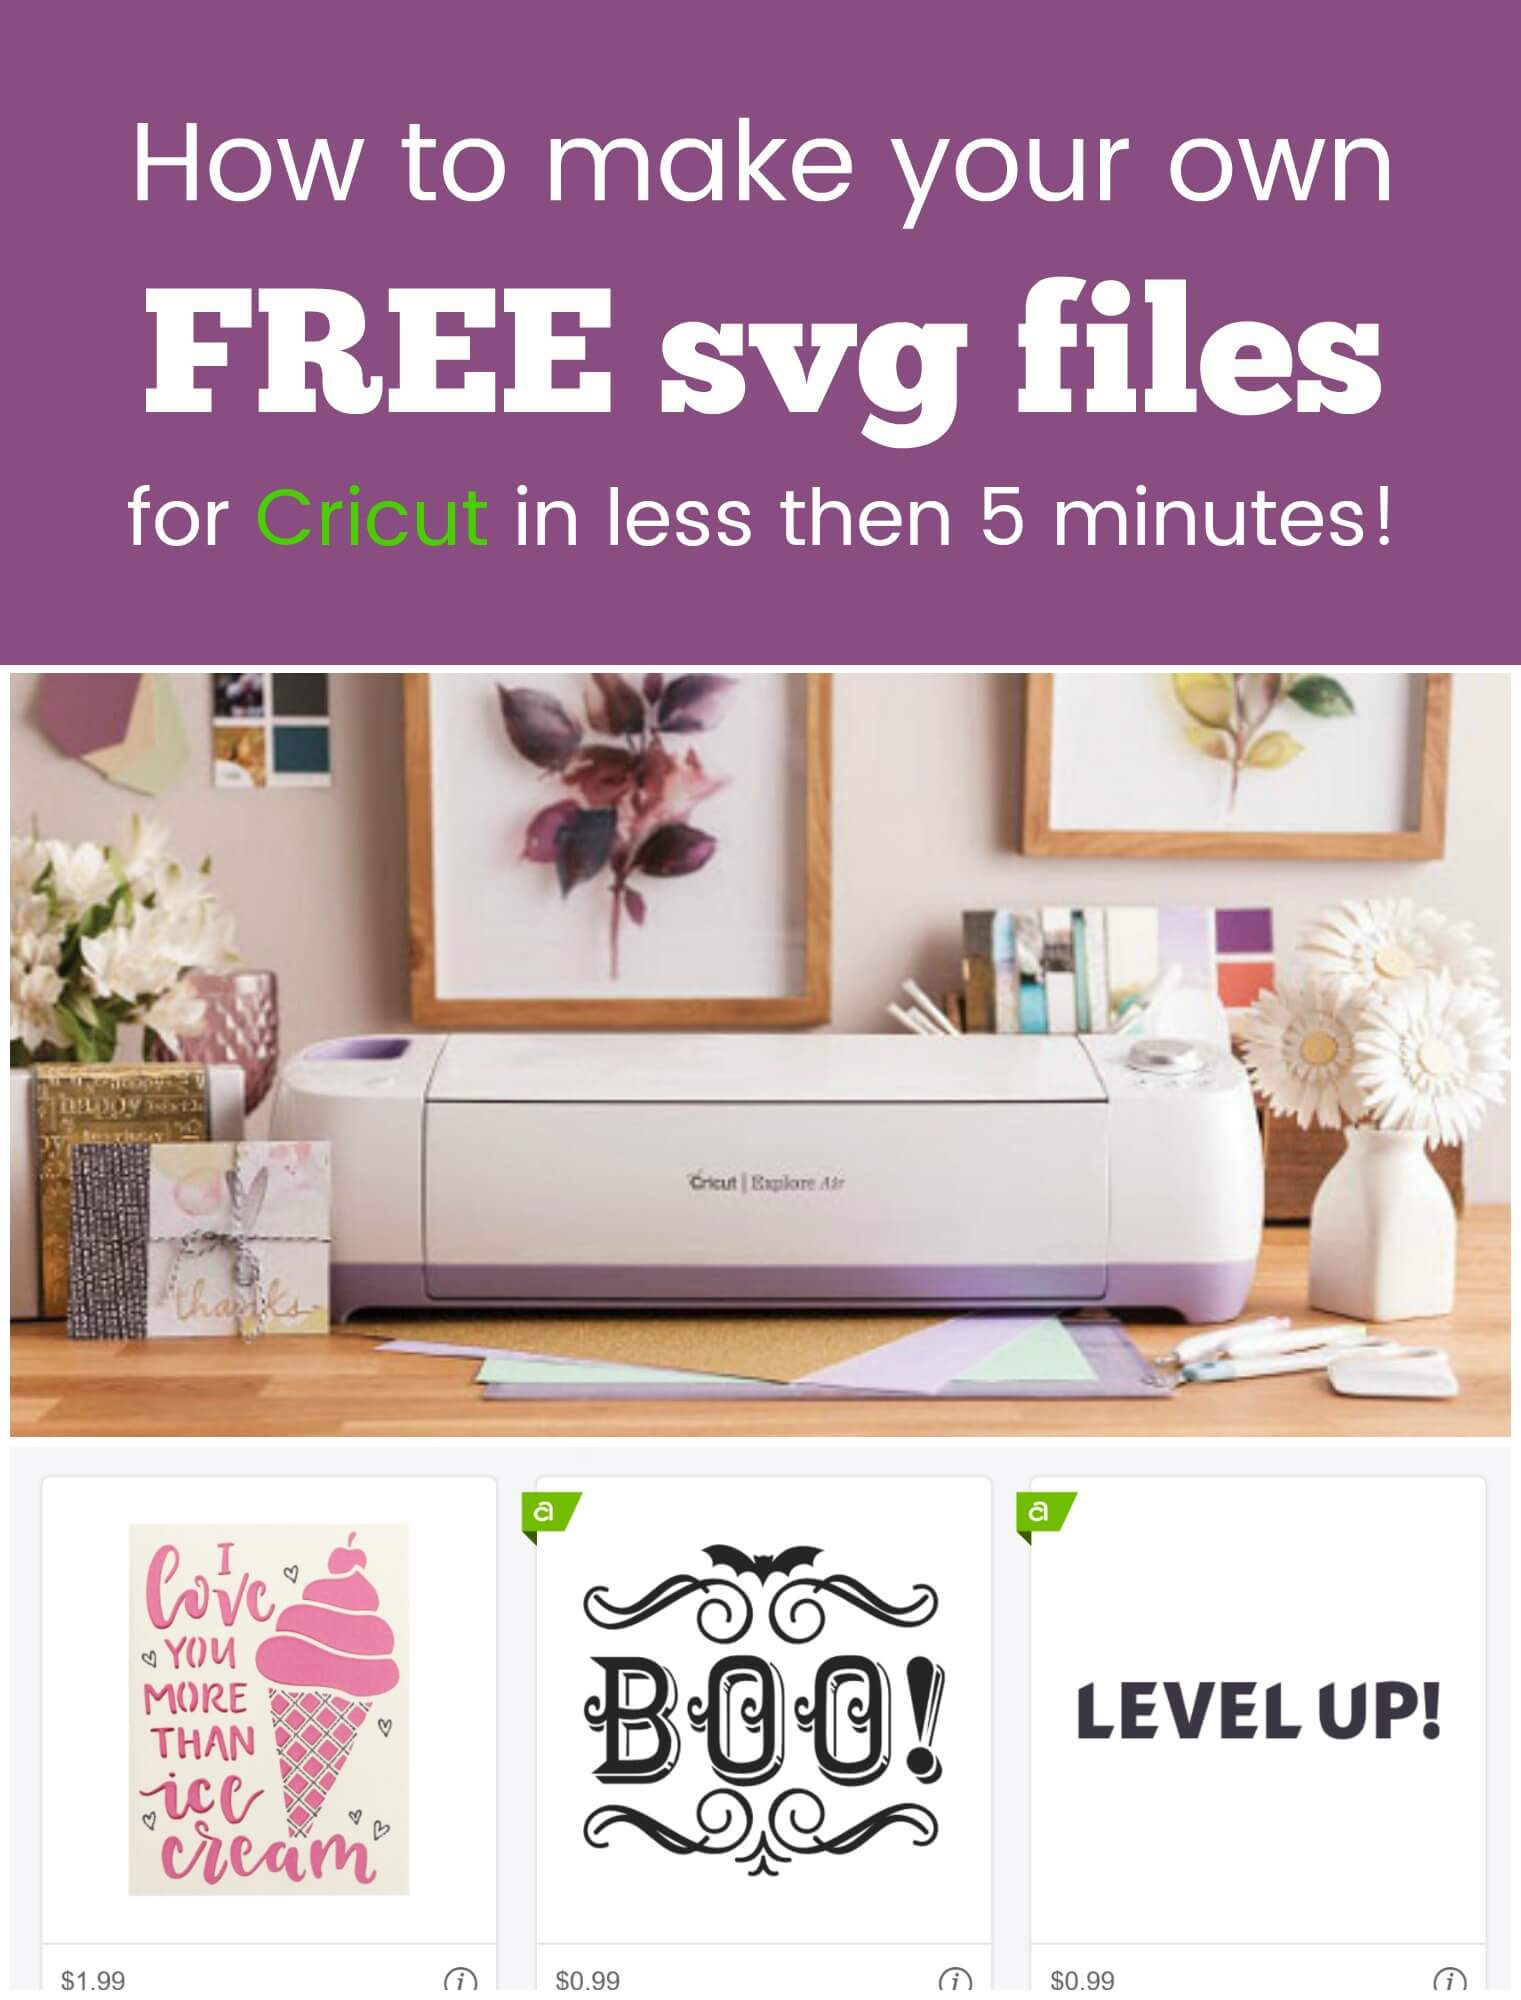 How to Convert an Image to SVG to use in Cricut Design Space